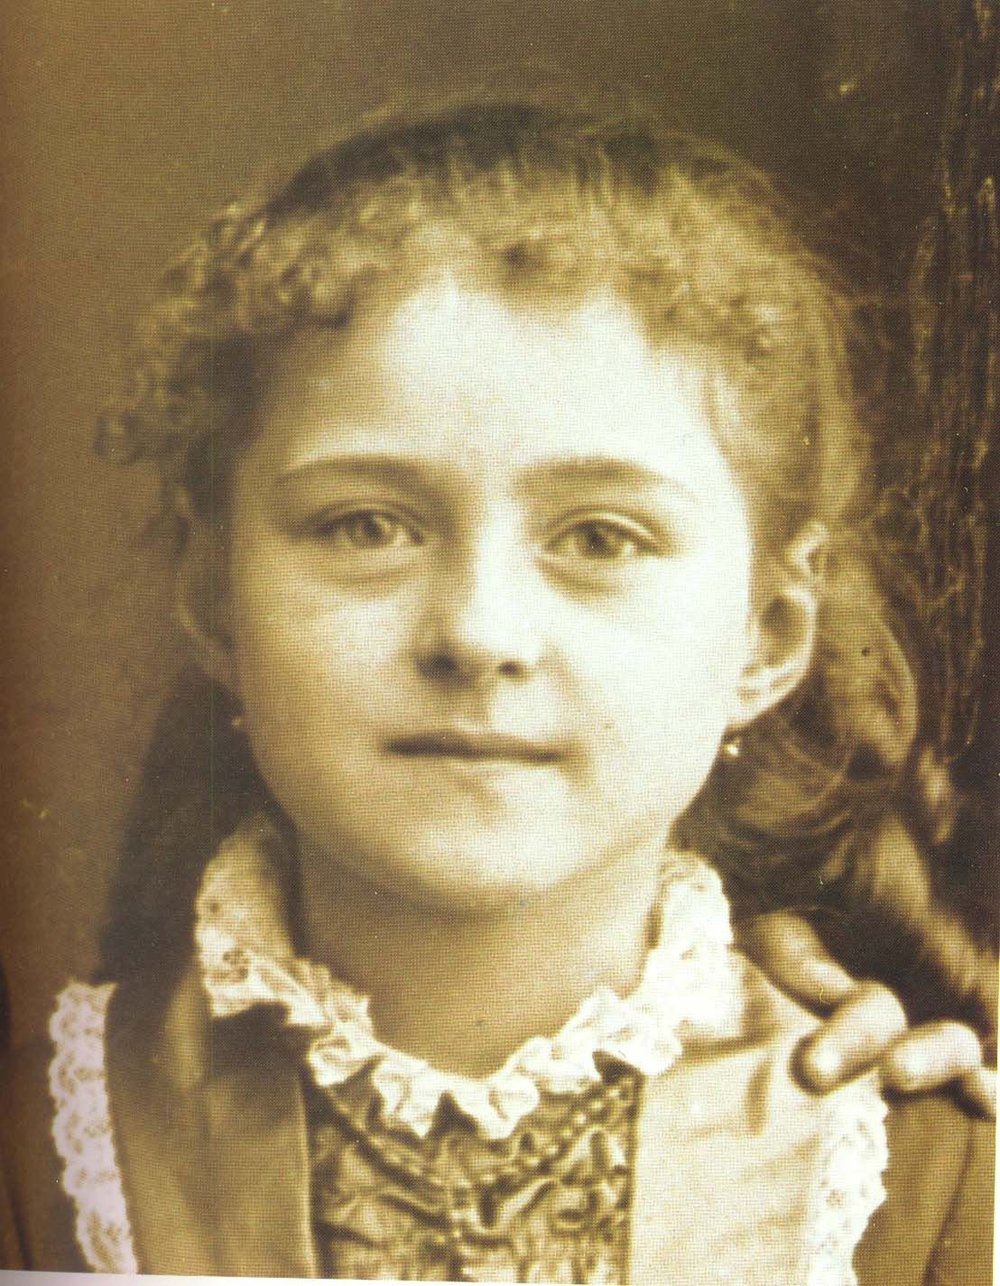 St. Therese of the Child Jesus and the Holy Face, c. 1878, age 5